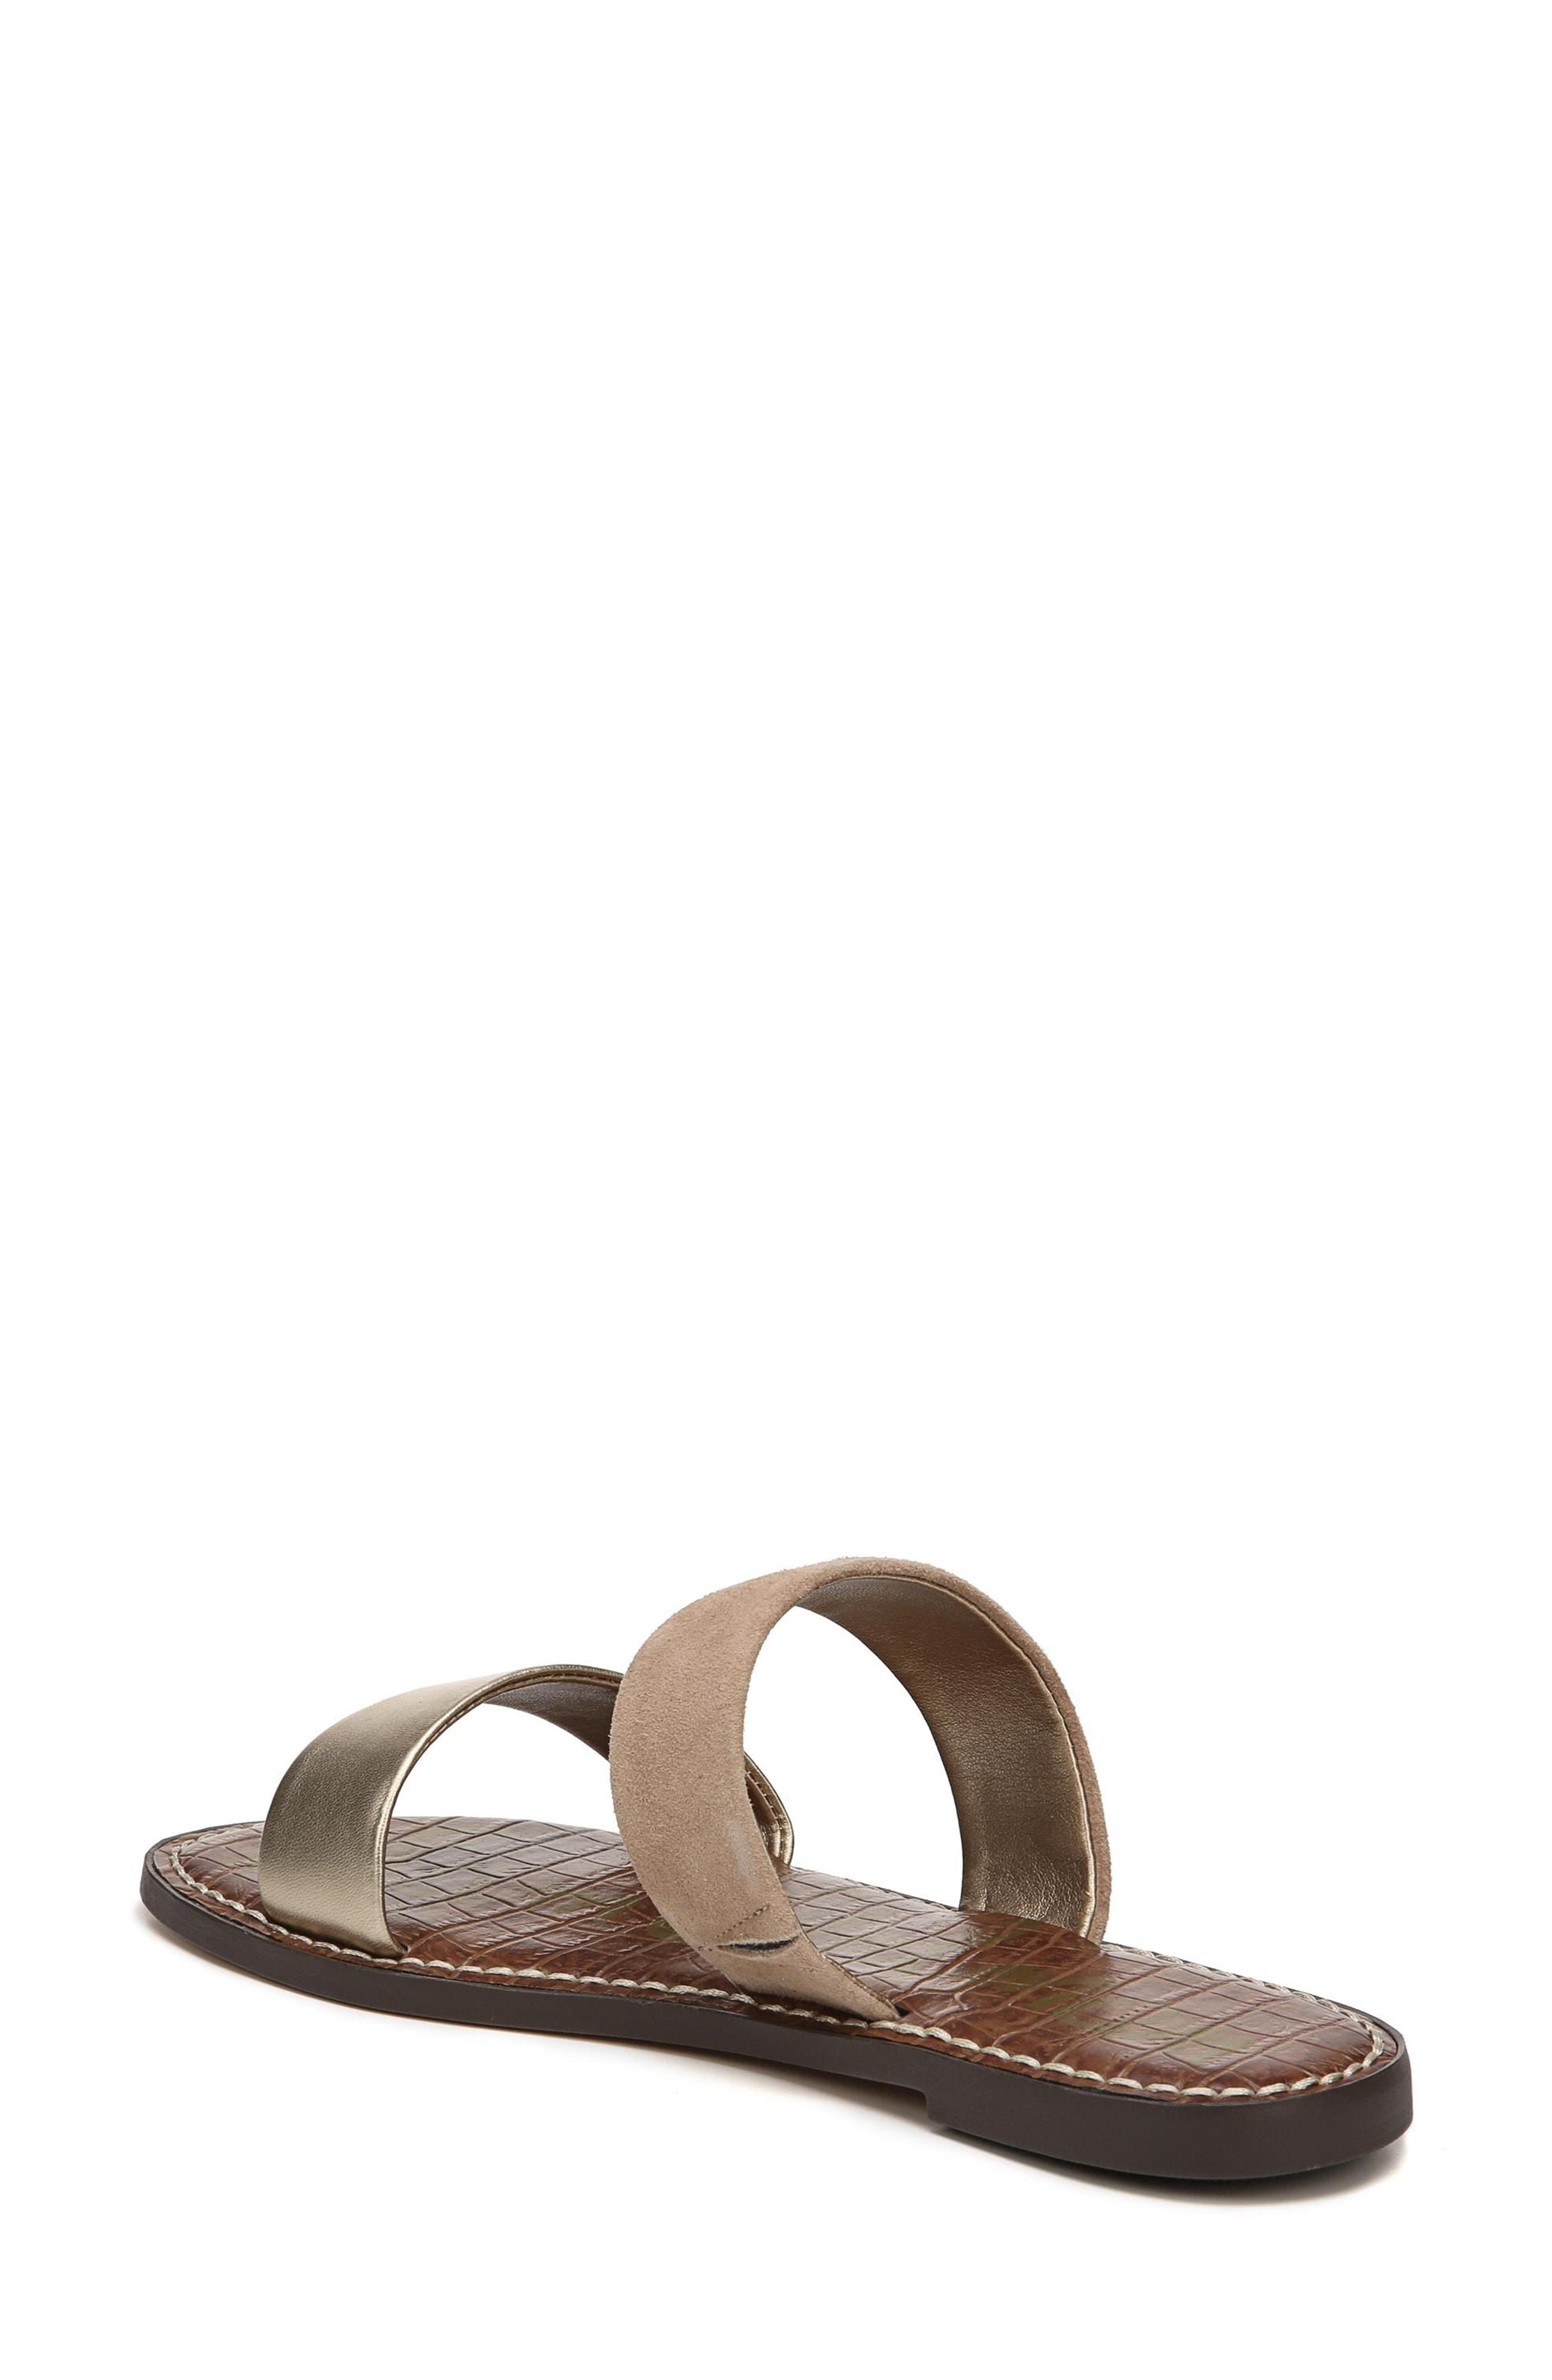 4e14bab9b Sam Edelman Women S Gala Leather   Suede Slide Sandals In Gold  Nude ...